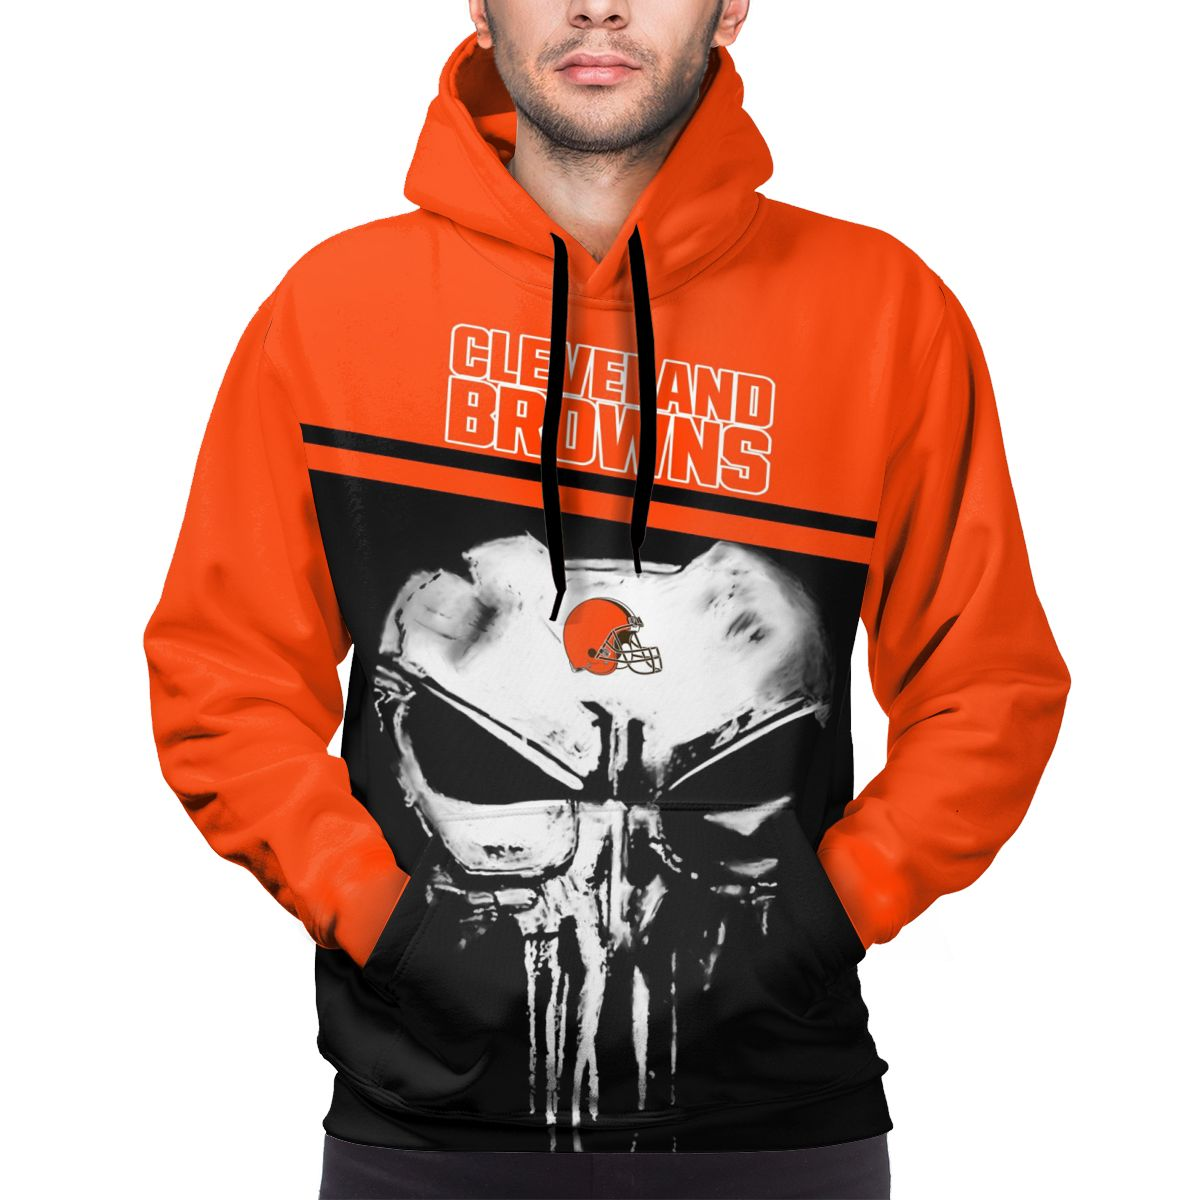 Browns Customize Hoodies For Men Pullover Sweatshirt